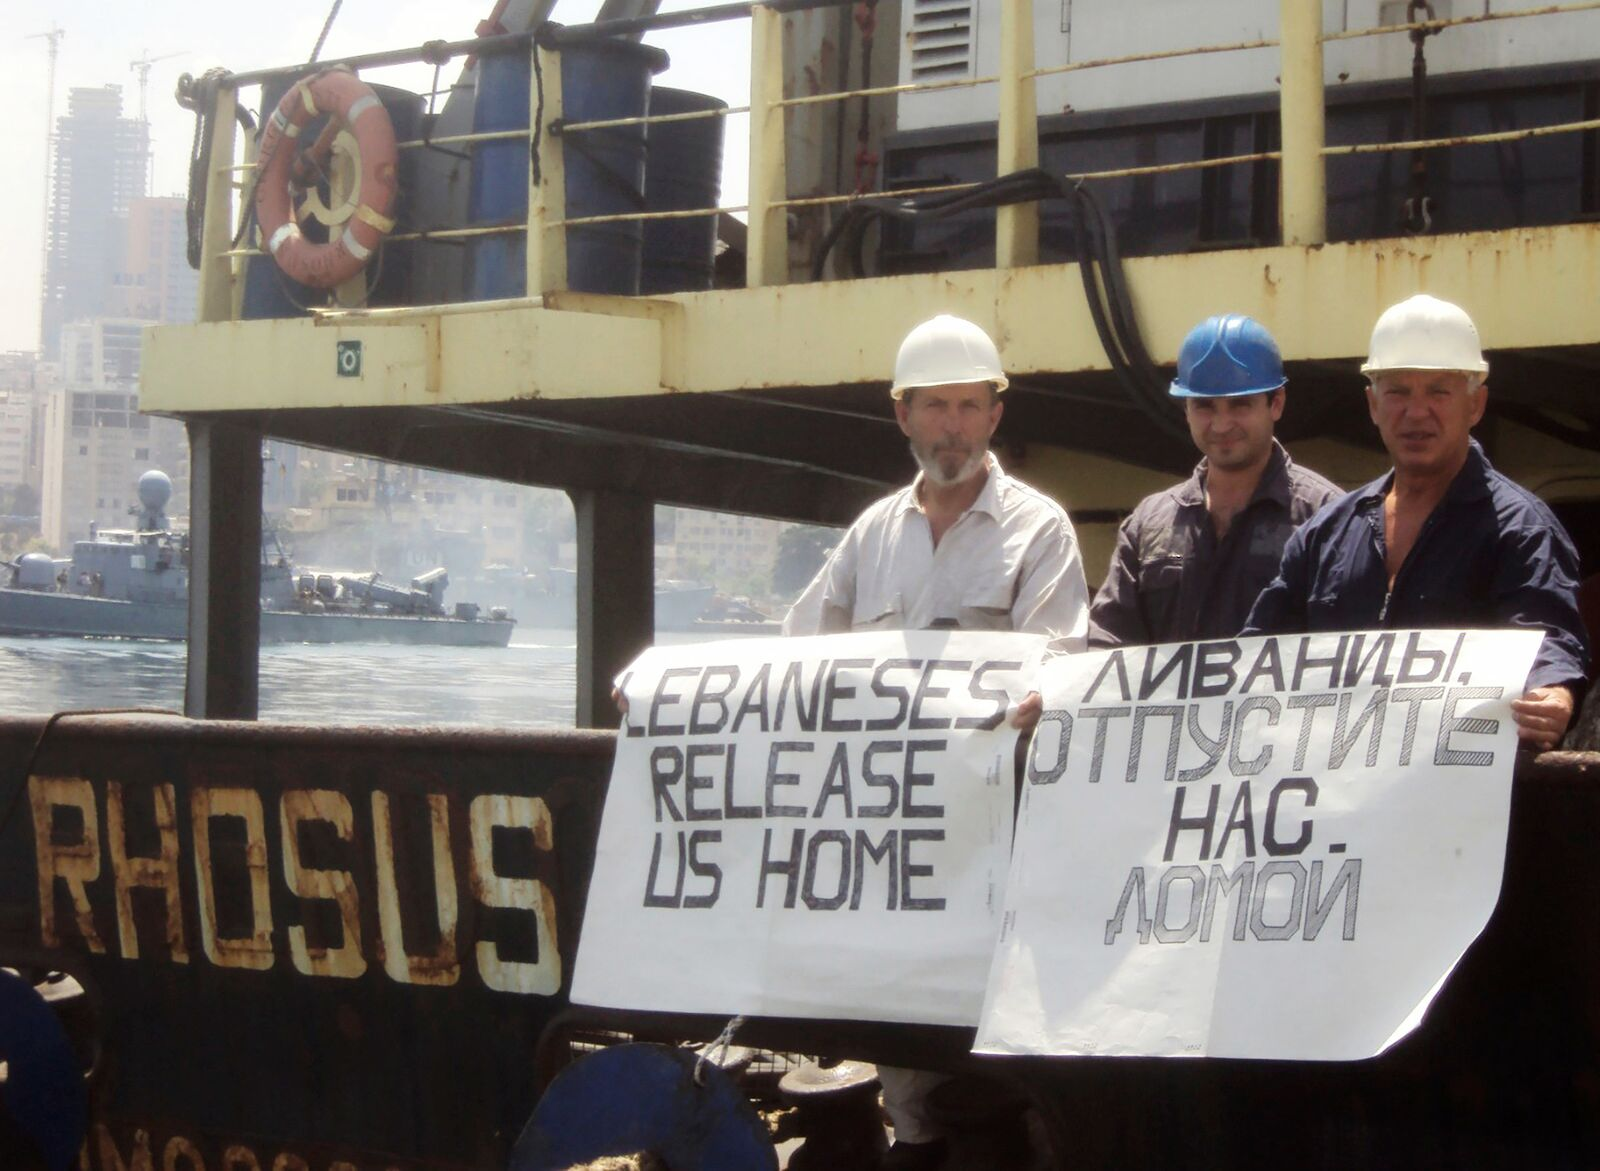 Captain Boris Prokoshev and crew members demand their release from the arrested cargo vessel Rhosus in the port of Beirut